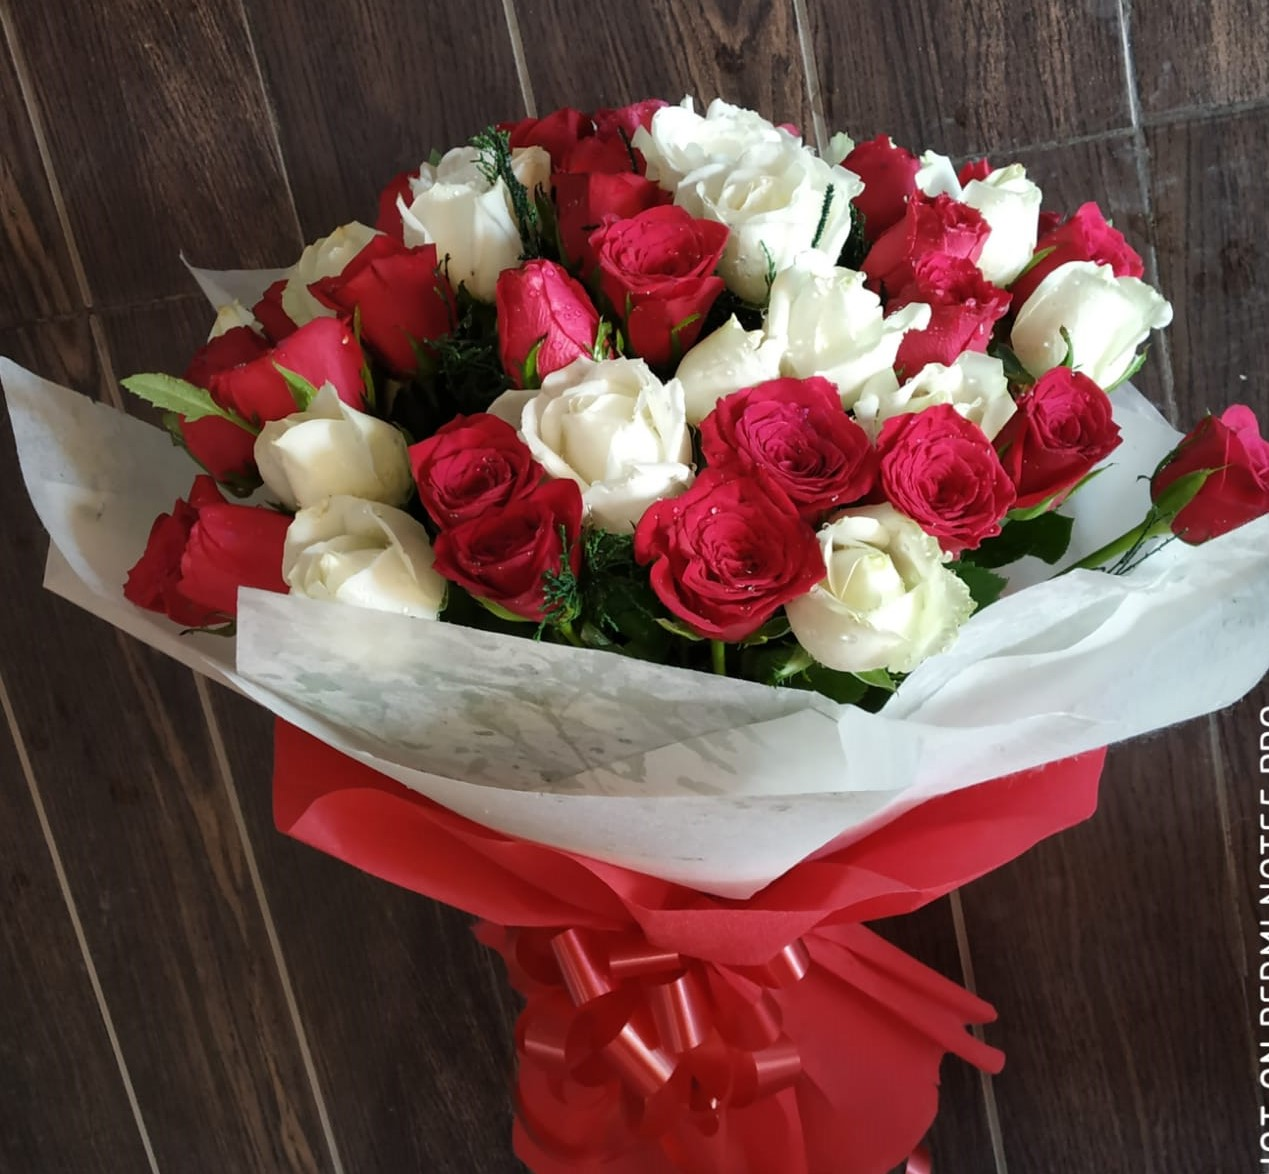 Flowers Delivery in Sector 2 GurgaonRed & White Roses in Duble Layer Packing